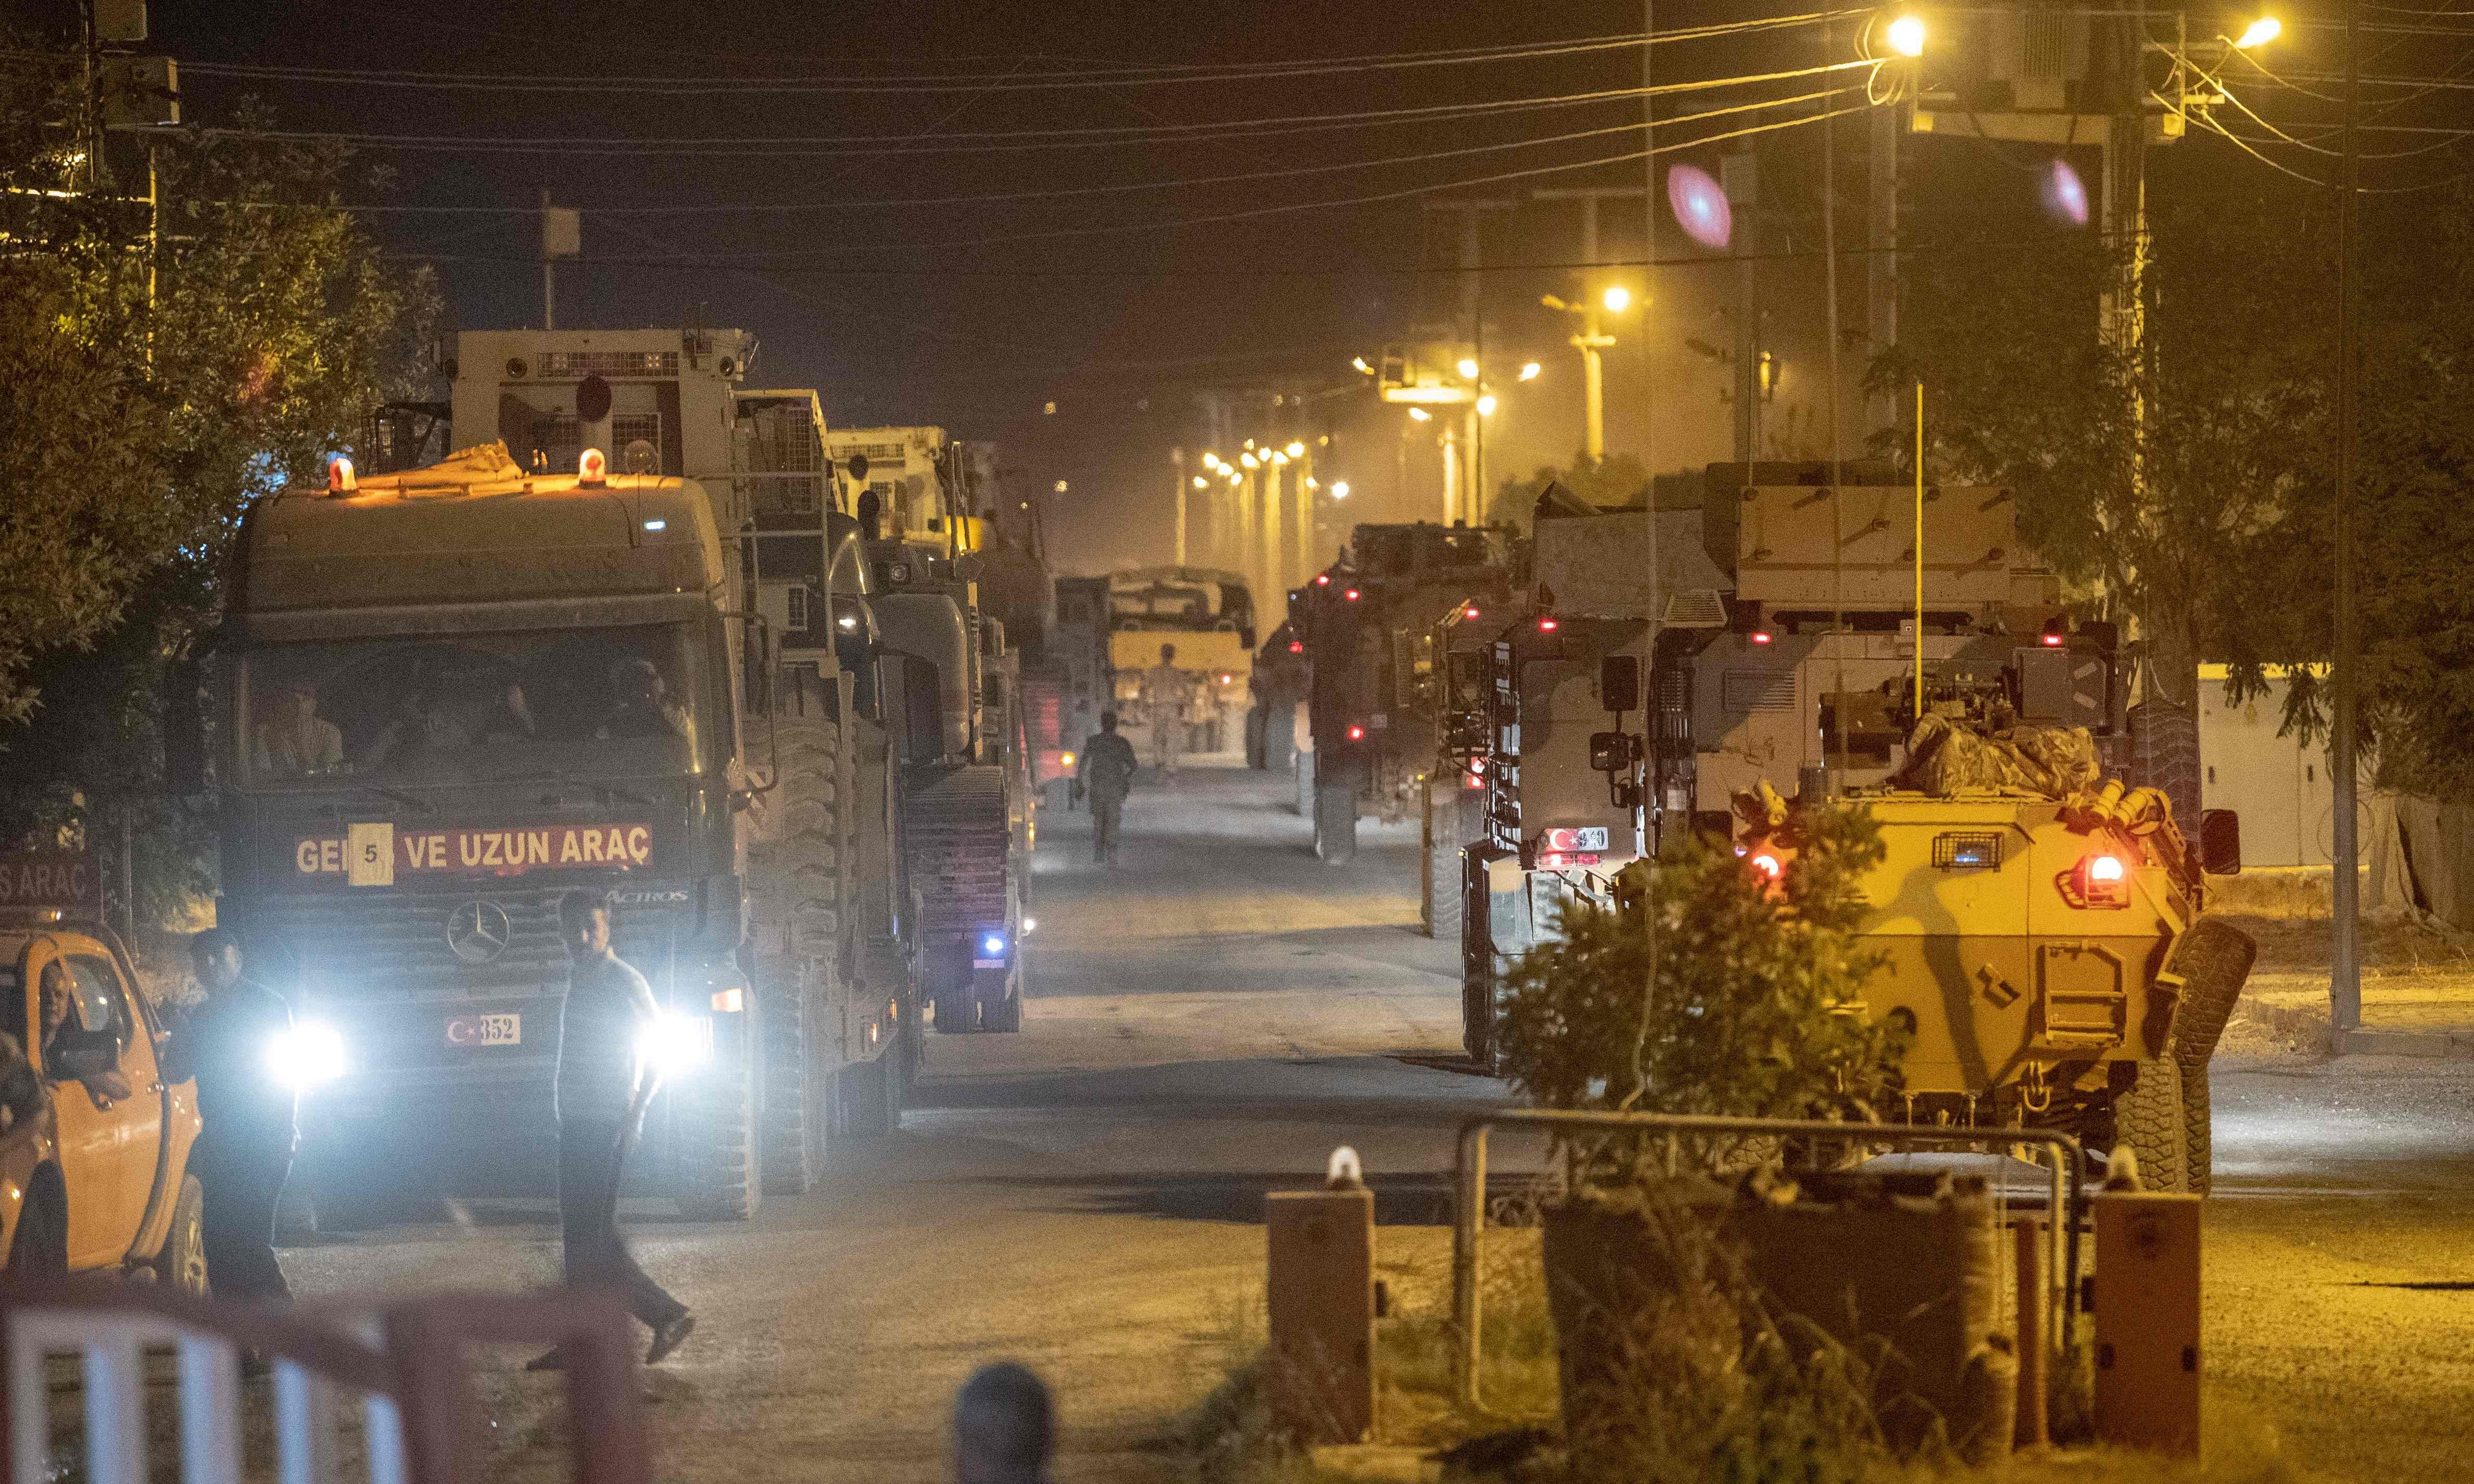 Turkey vows to press ahead with attack on Kurdish-led forces in Syria